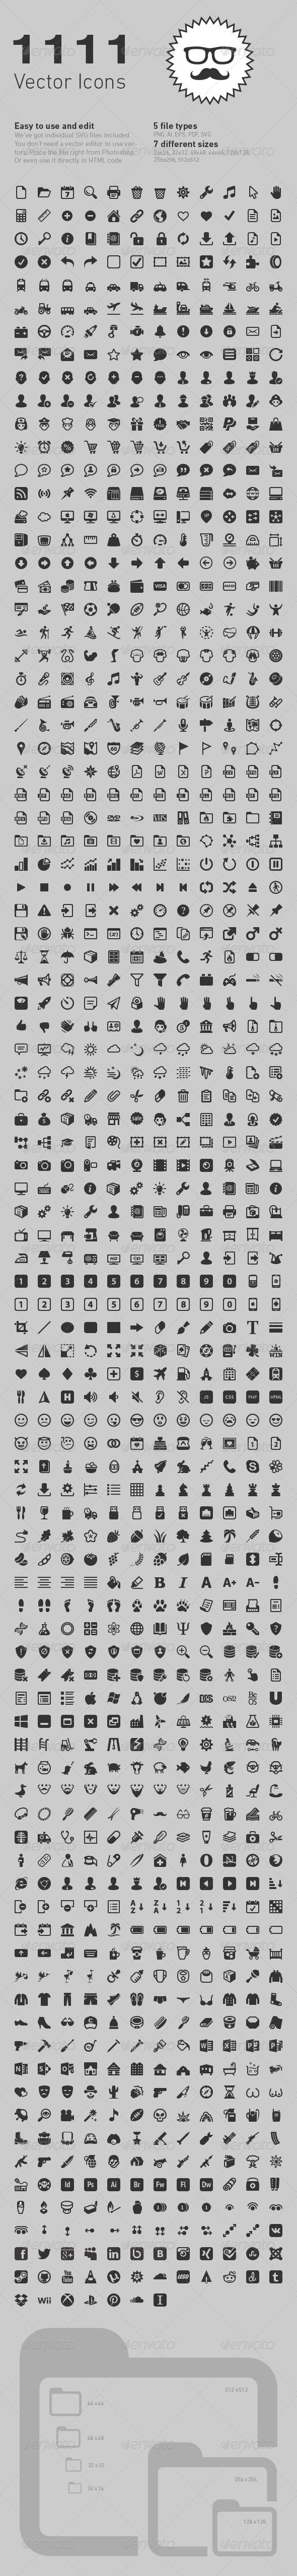 GraphicRiver 1111 vector icons 4931492